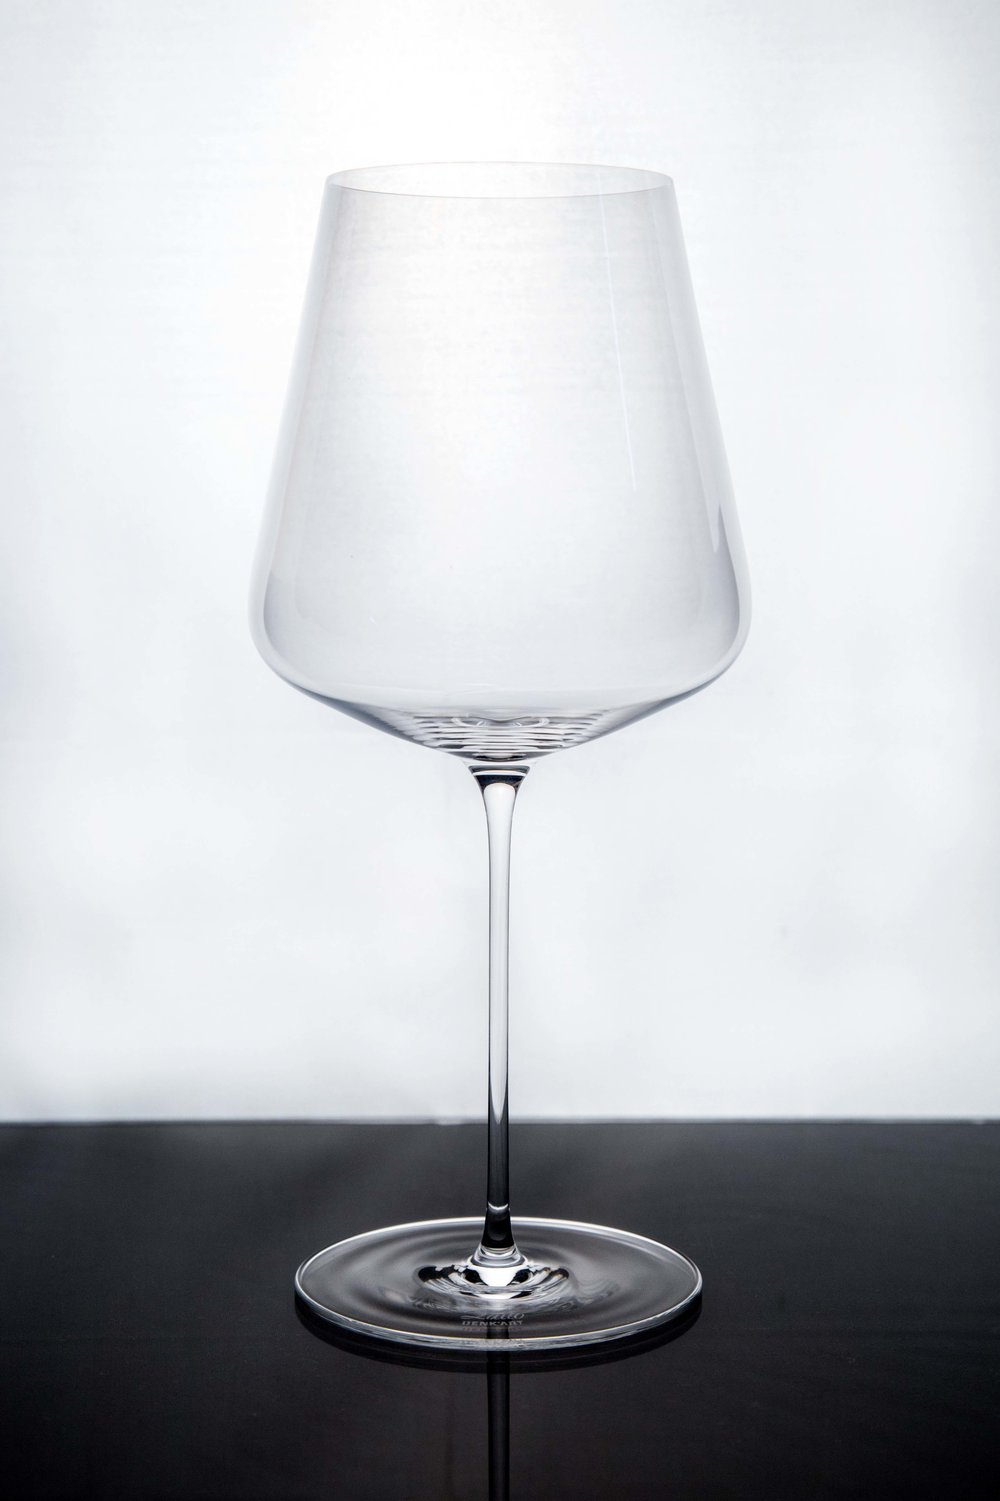 Zalto Bordeaux Glass Web (1).jpg